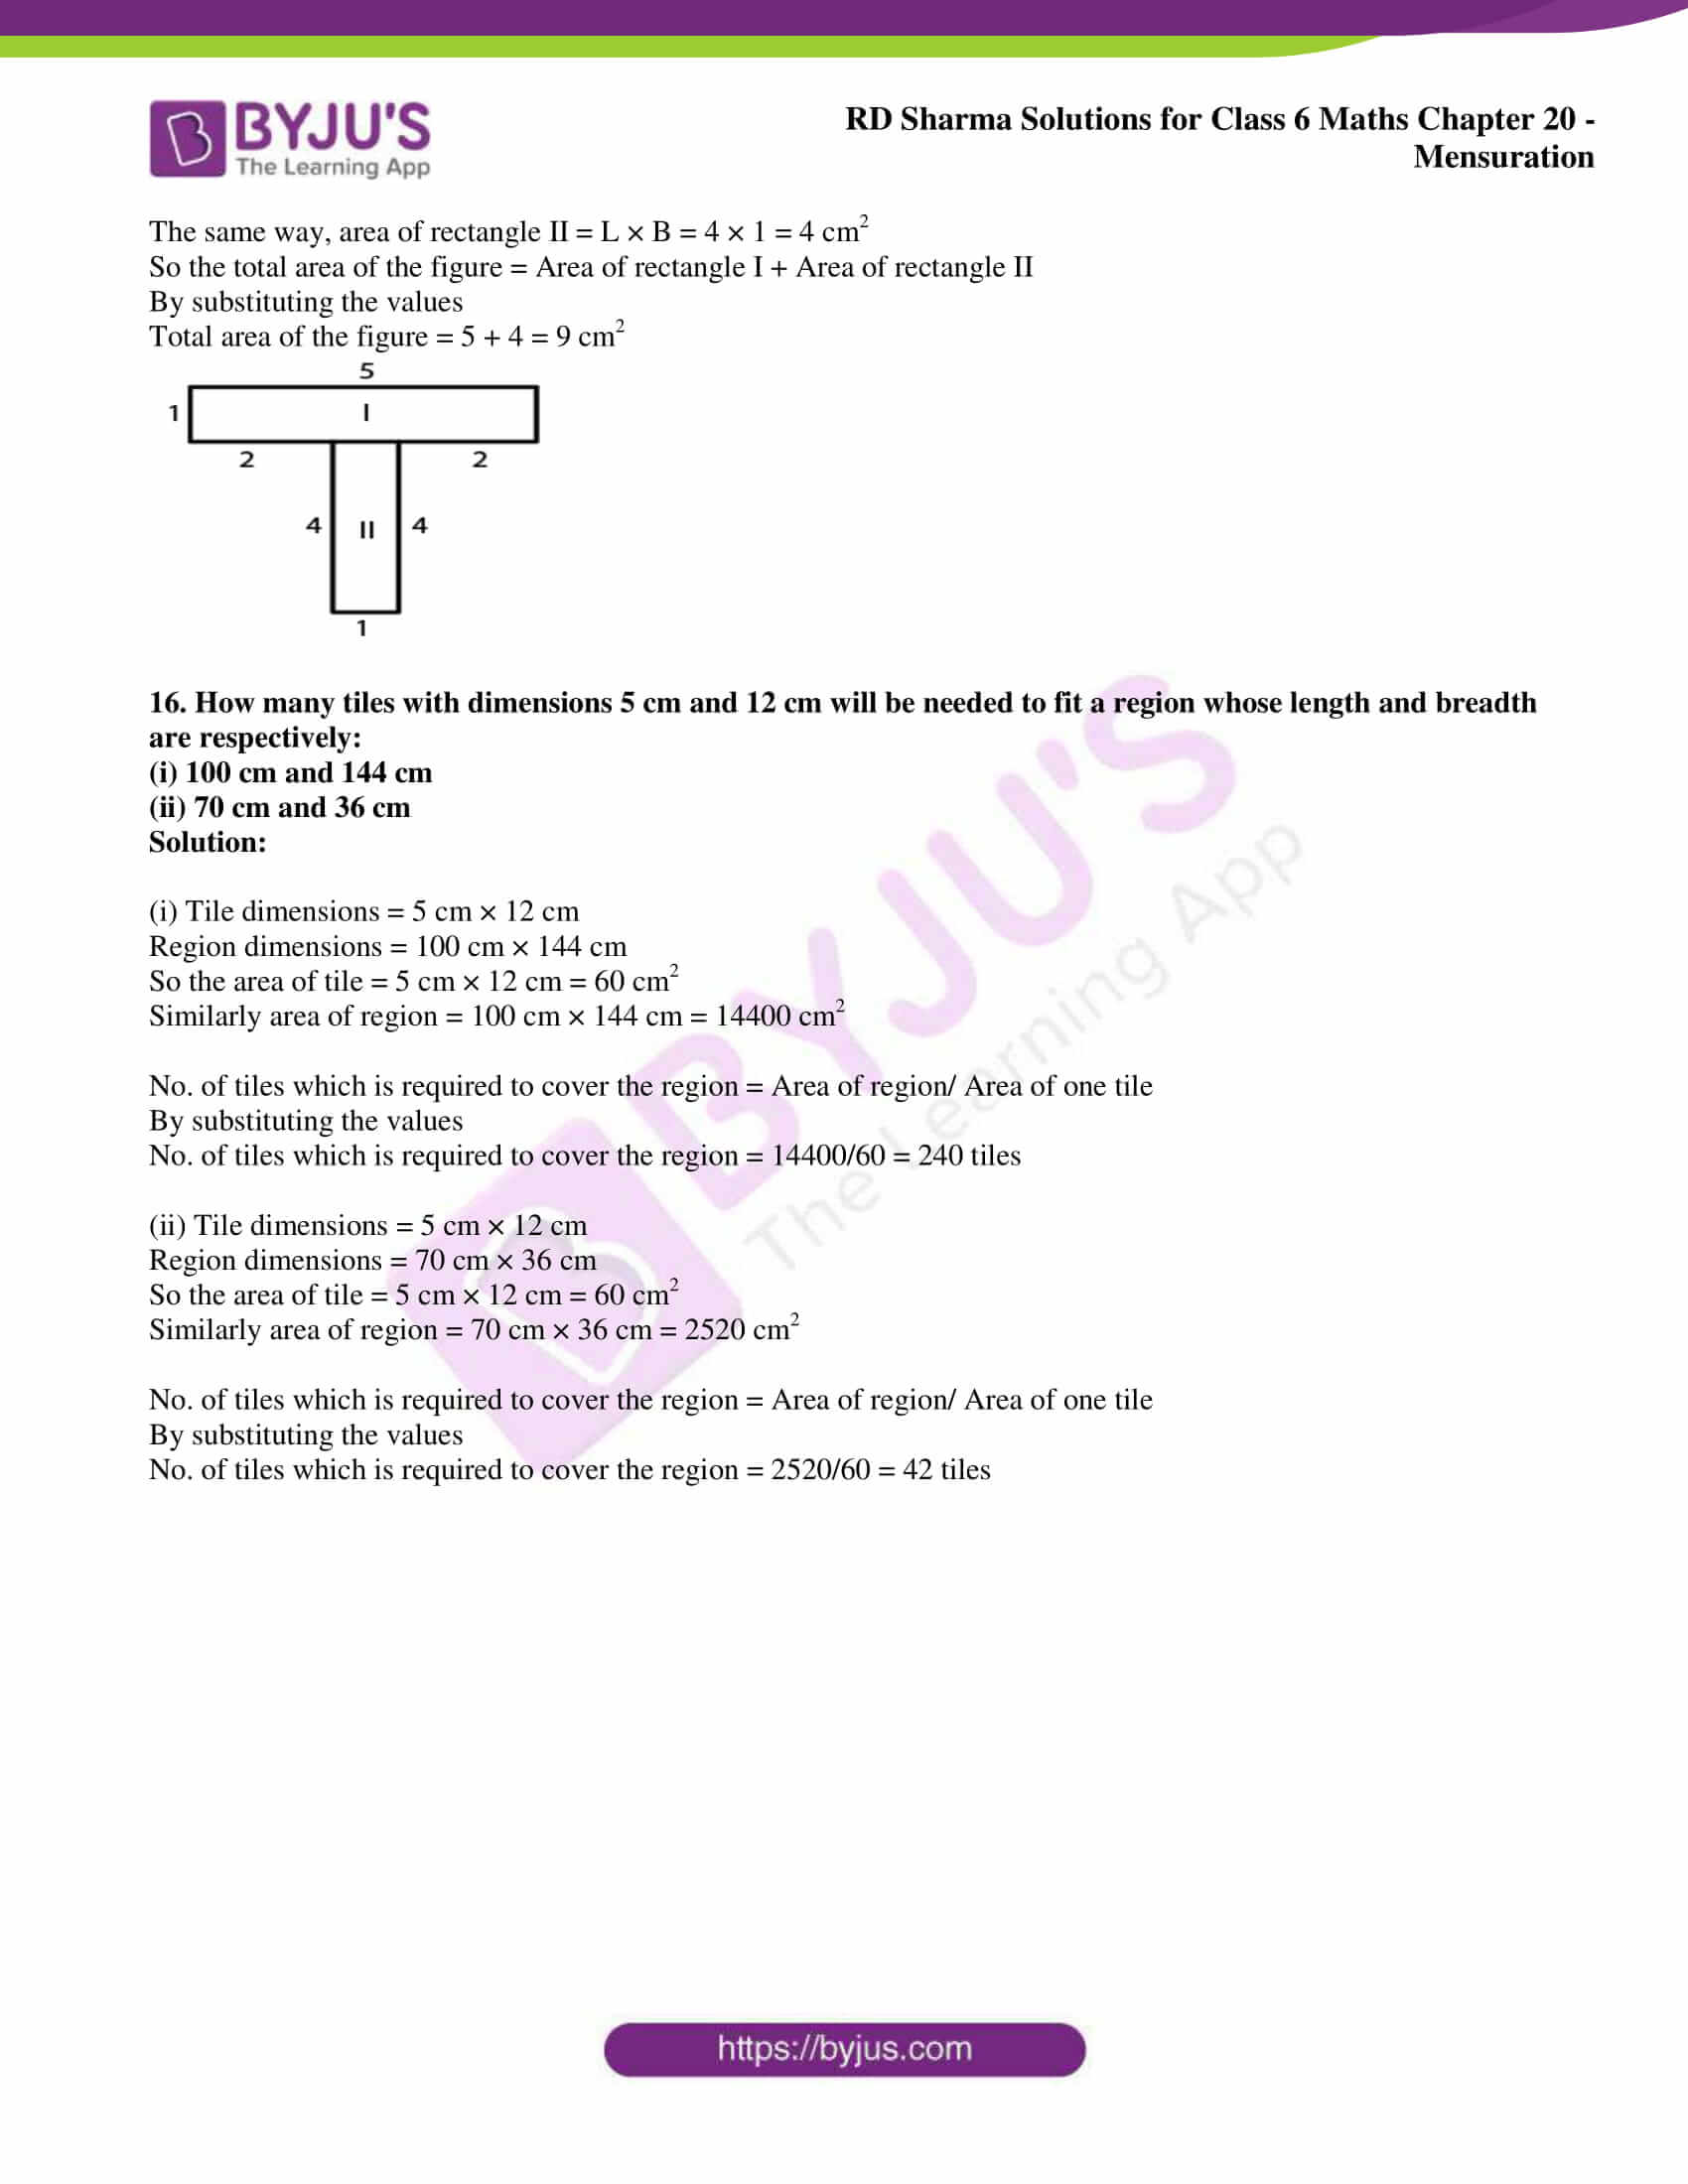 rd sharma solutions nov2020 class 6 maths chapter 20 exercise 4 8